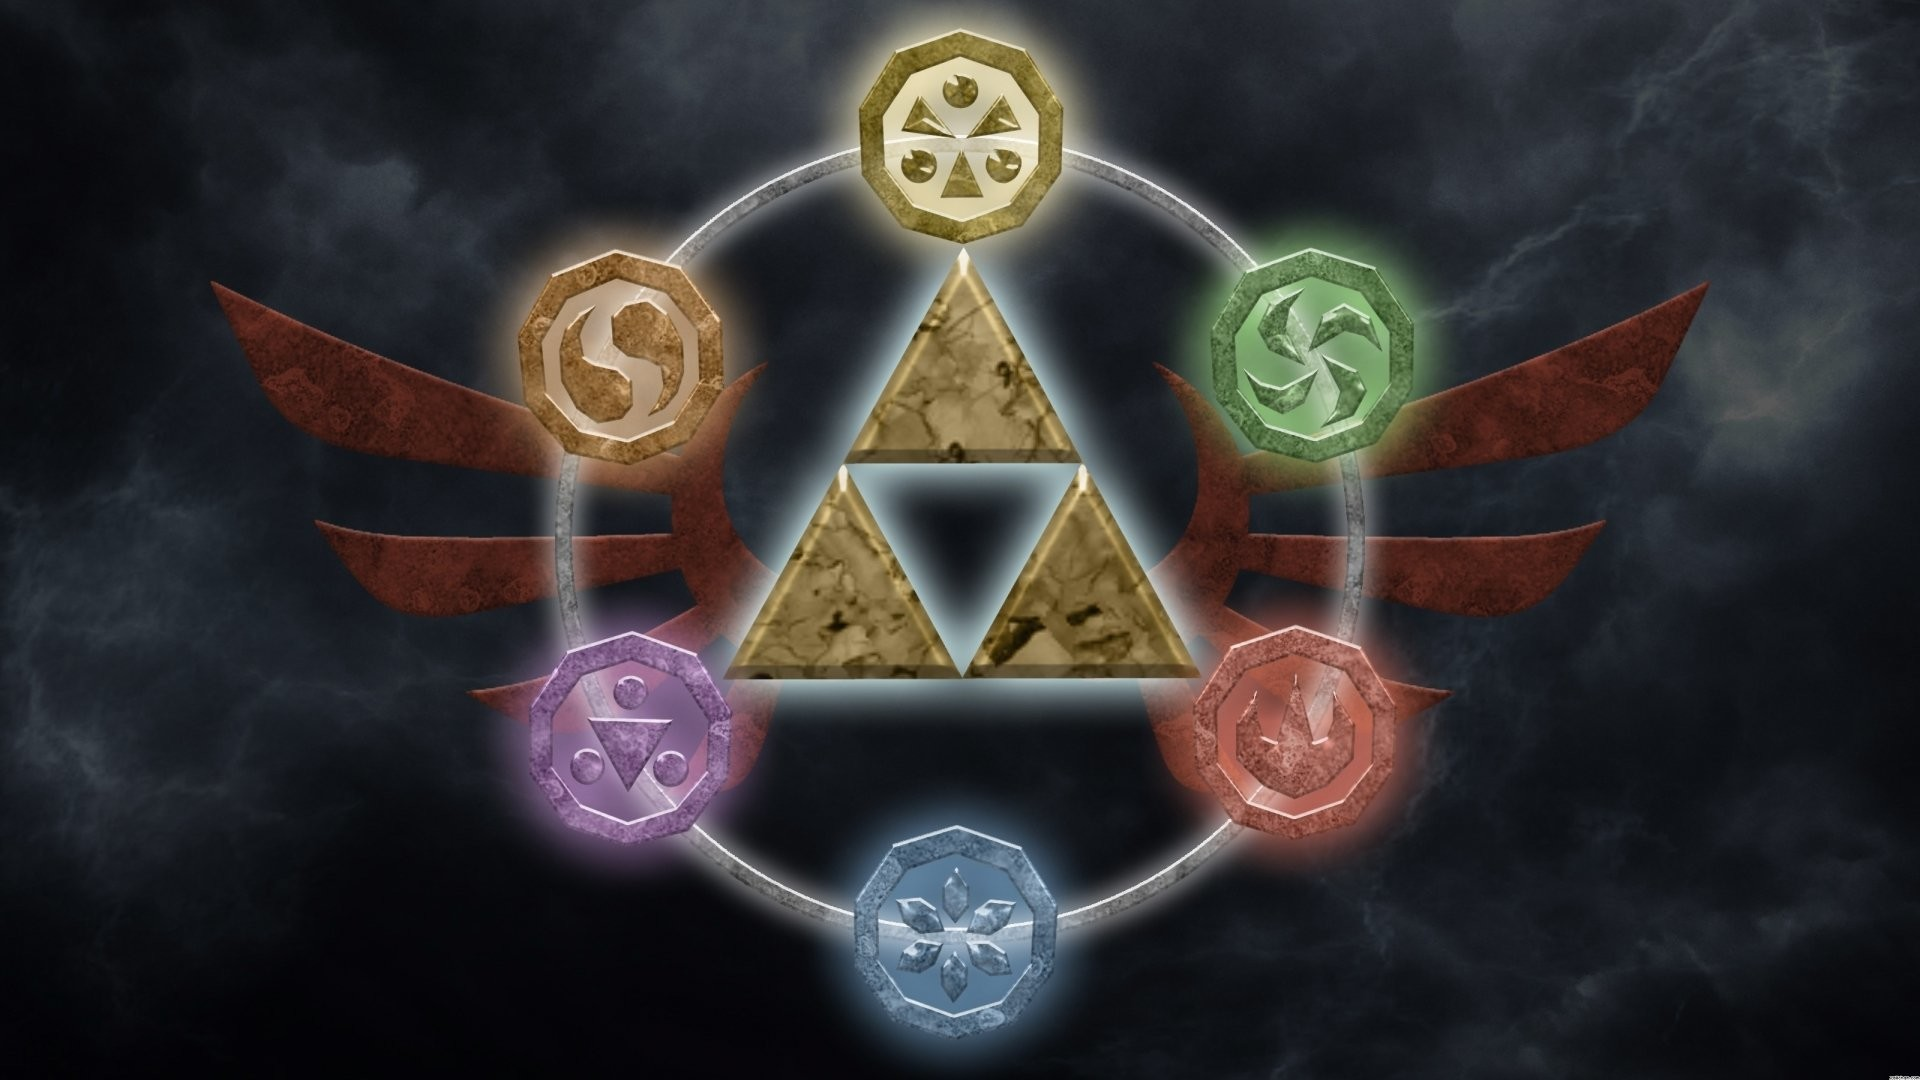 Zelda Ocarina Of Time Wallpaper Triforce Wallpapertag